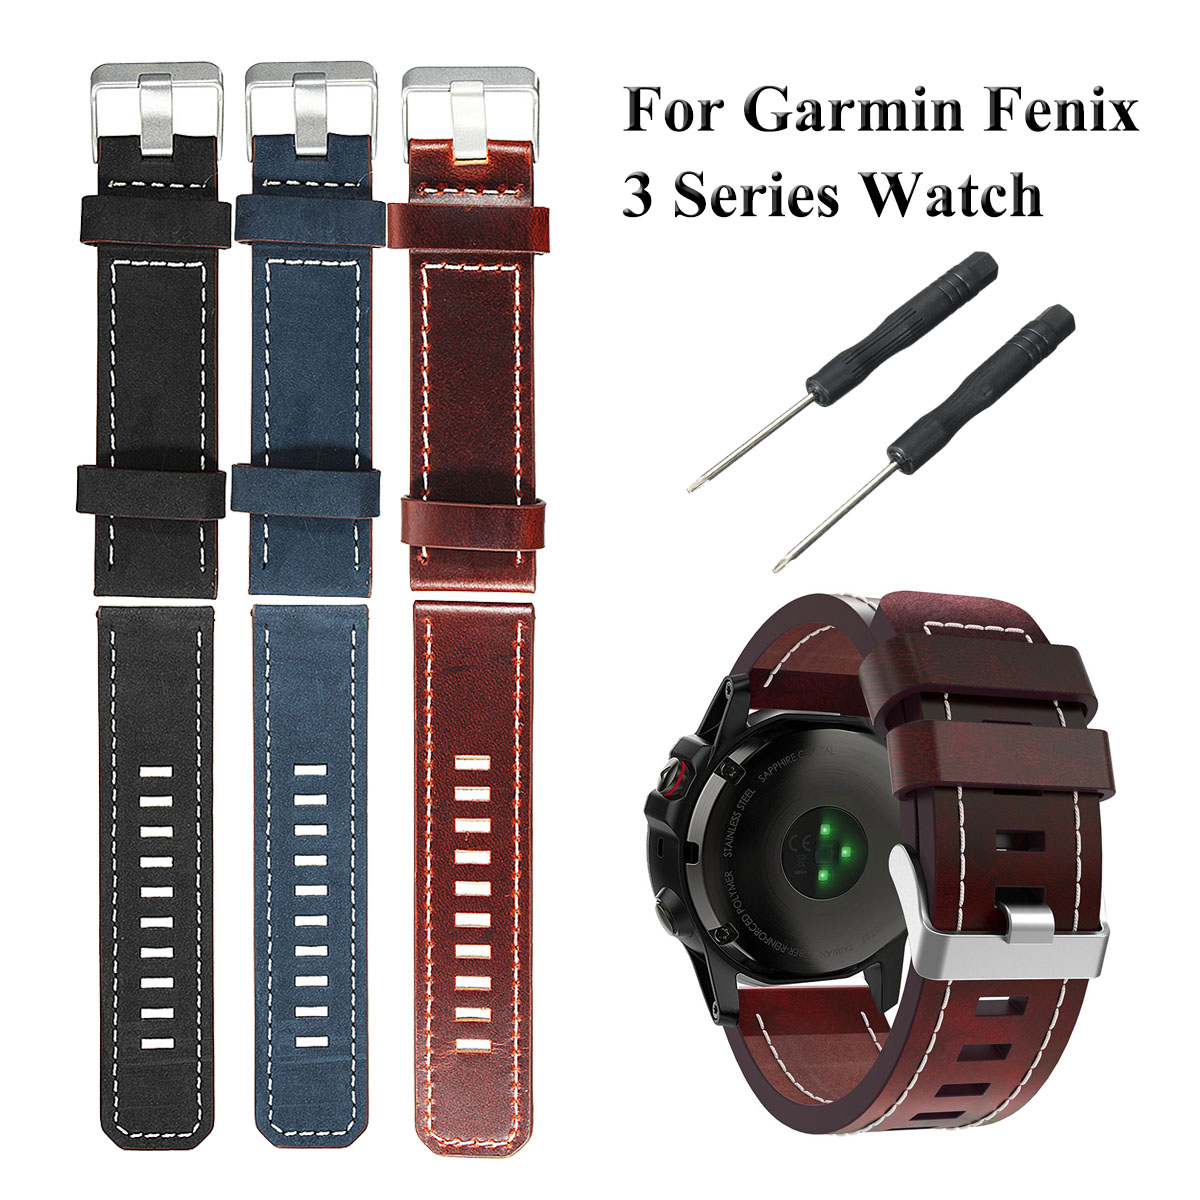 PU Leather Watch Band Strap Bracelet Replacement For Garmin Fenix 3 Series +Tool